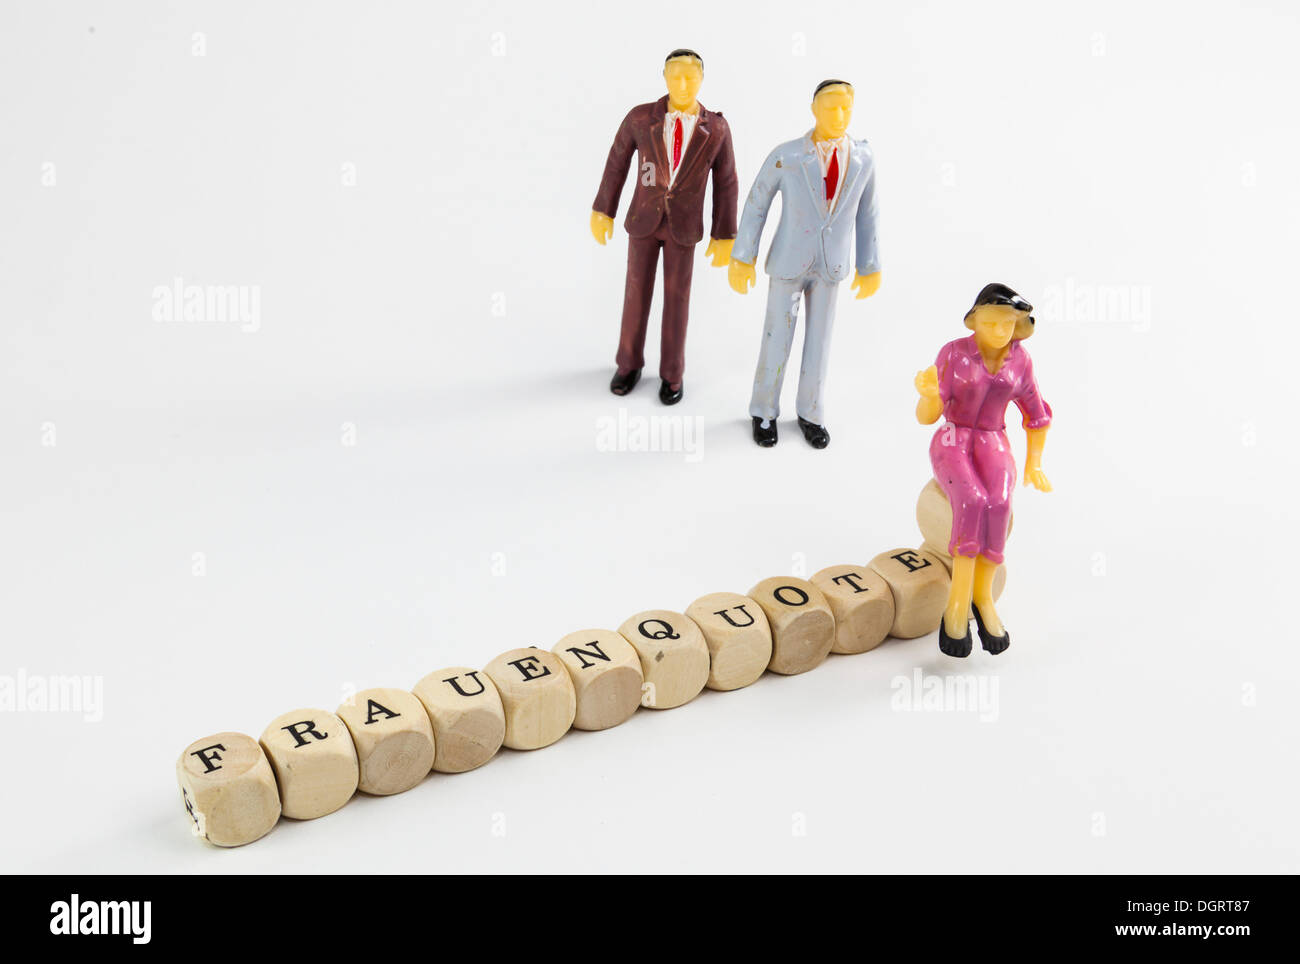 Miniature figures, cubes with letters forming the word 'Frauenquote', German for 'female quota' - Stock Image